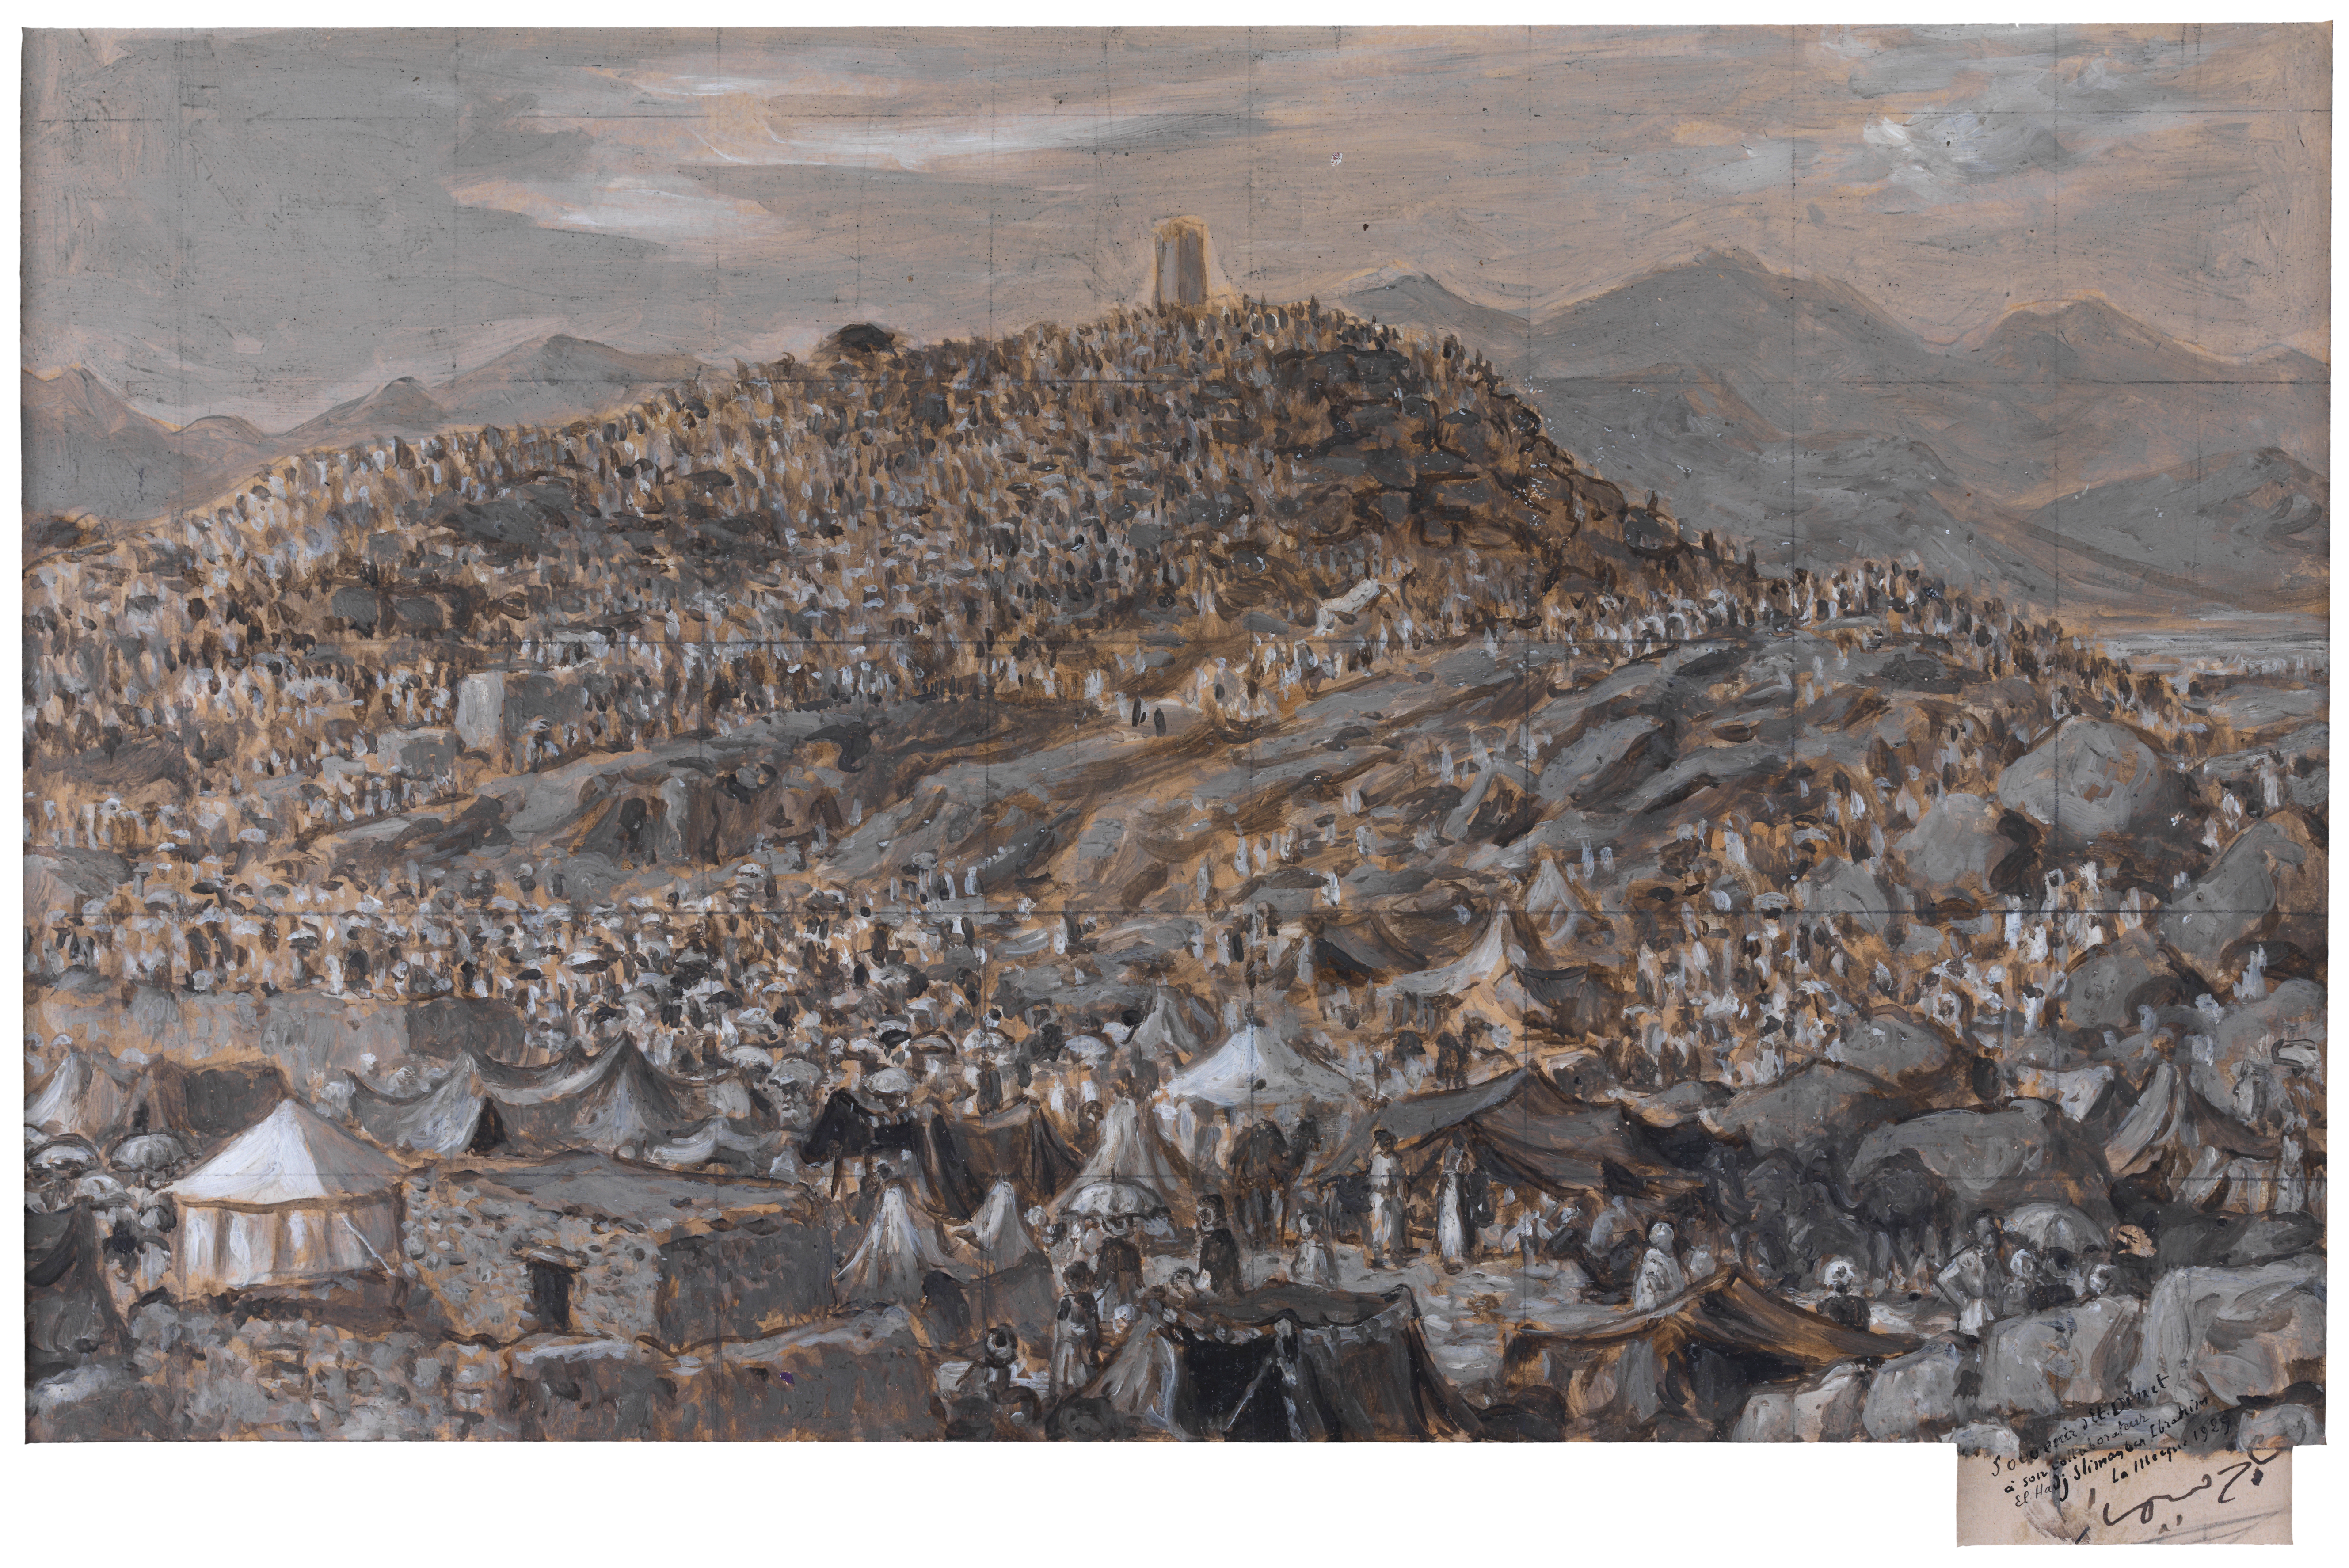 The pilgrims at Mount Arafat on the 9th day of dhu'l-Hijjah, by Etienne Dinet